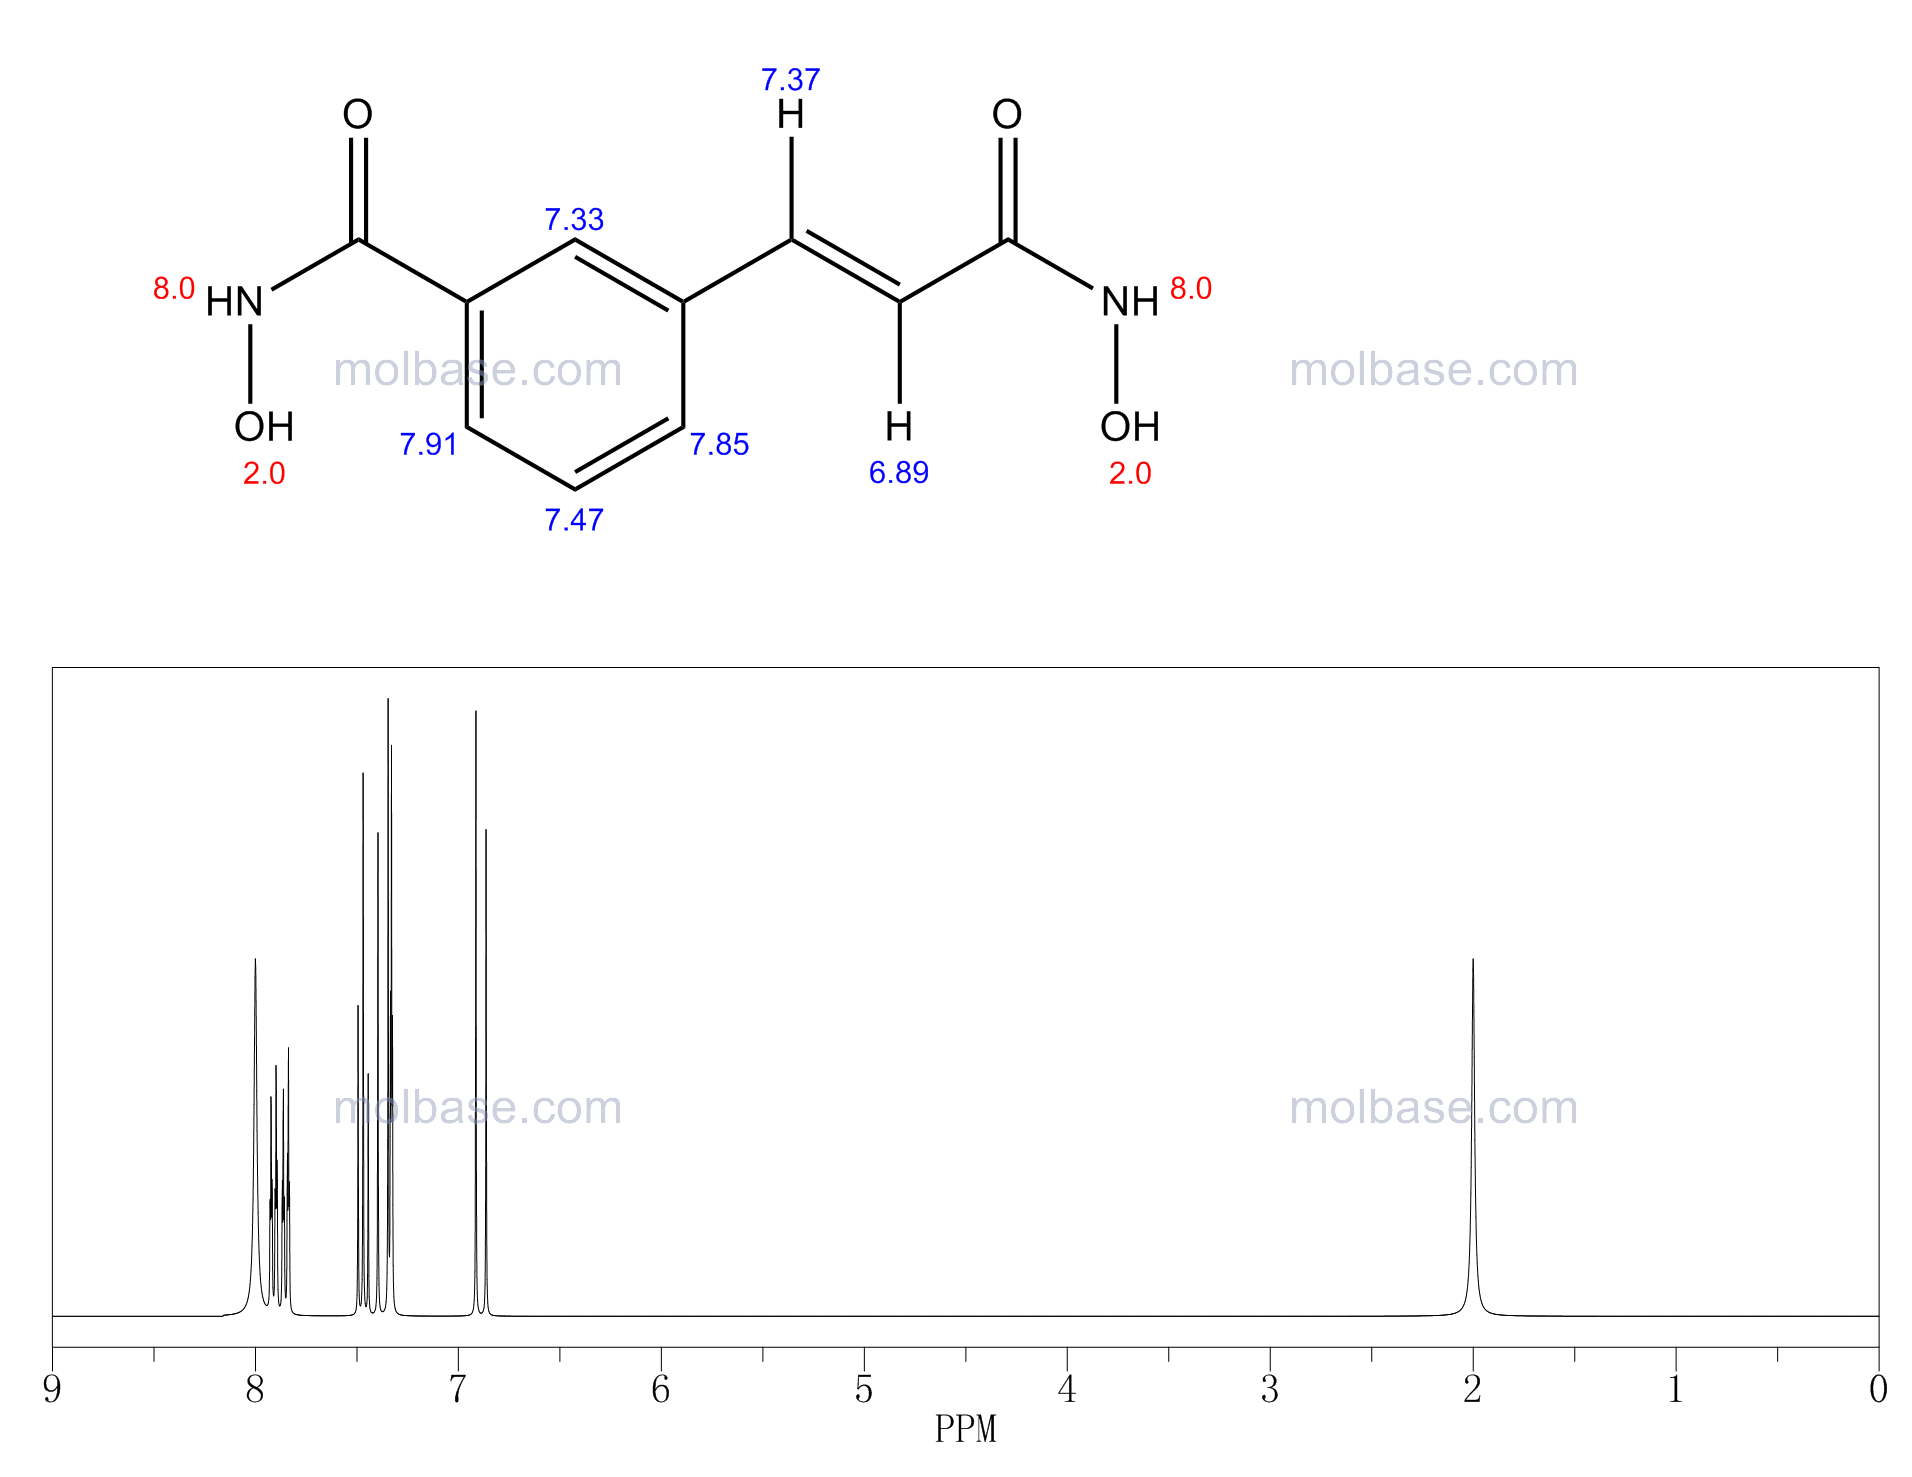 m-Carboxycinnamic Acid Bishydroxamide NMR spectra analysis, Chemical CAS NO. 174664-65-4 NMR spectral analysis, m-Carboxycinnamic Acid Bishydroxamide C-NMR spectrum